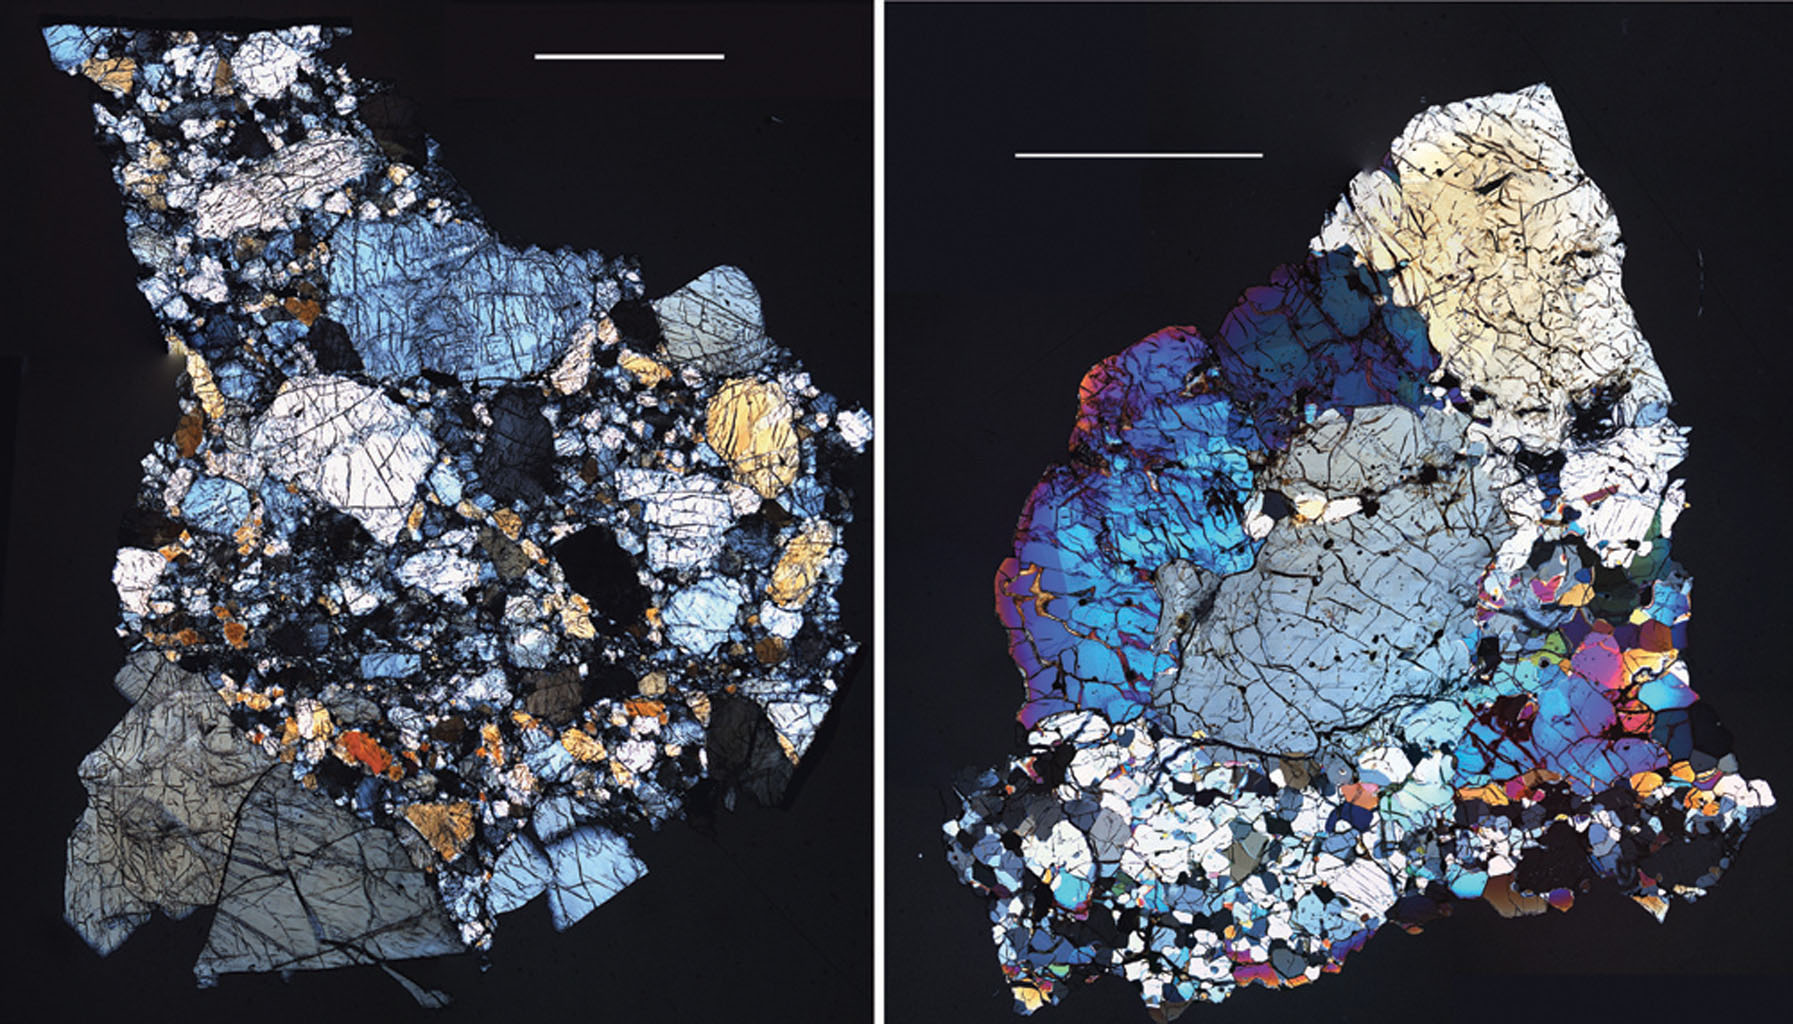 These images are of HED (howardite, eucrite and diogenite) meteorites are a large group of meteorites believed to originate from asteroid Vesta, a hypothesis that is consistent with current Dawn observations.